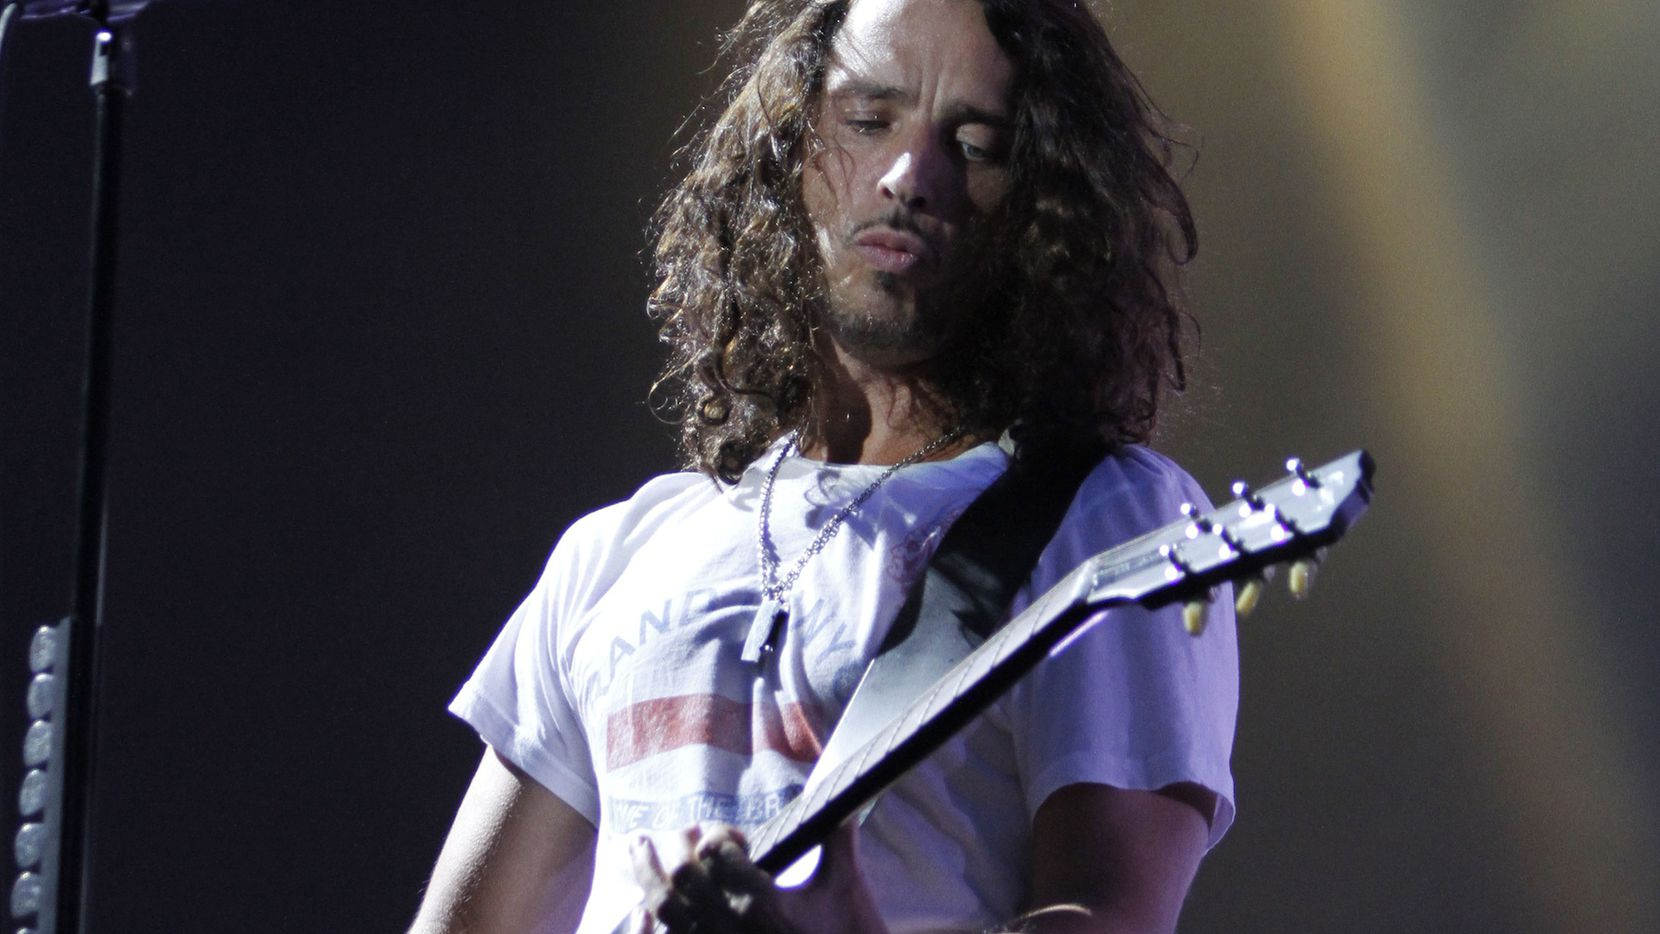 El cantante Chris Cornell, vocalista de Soundgarden AP